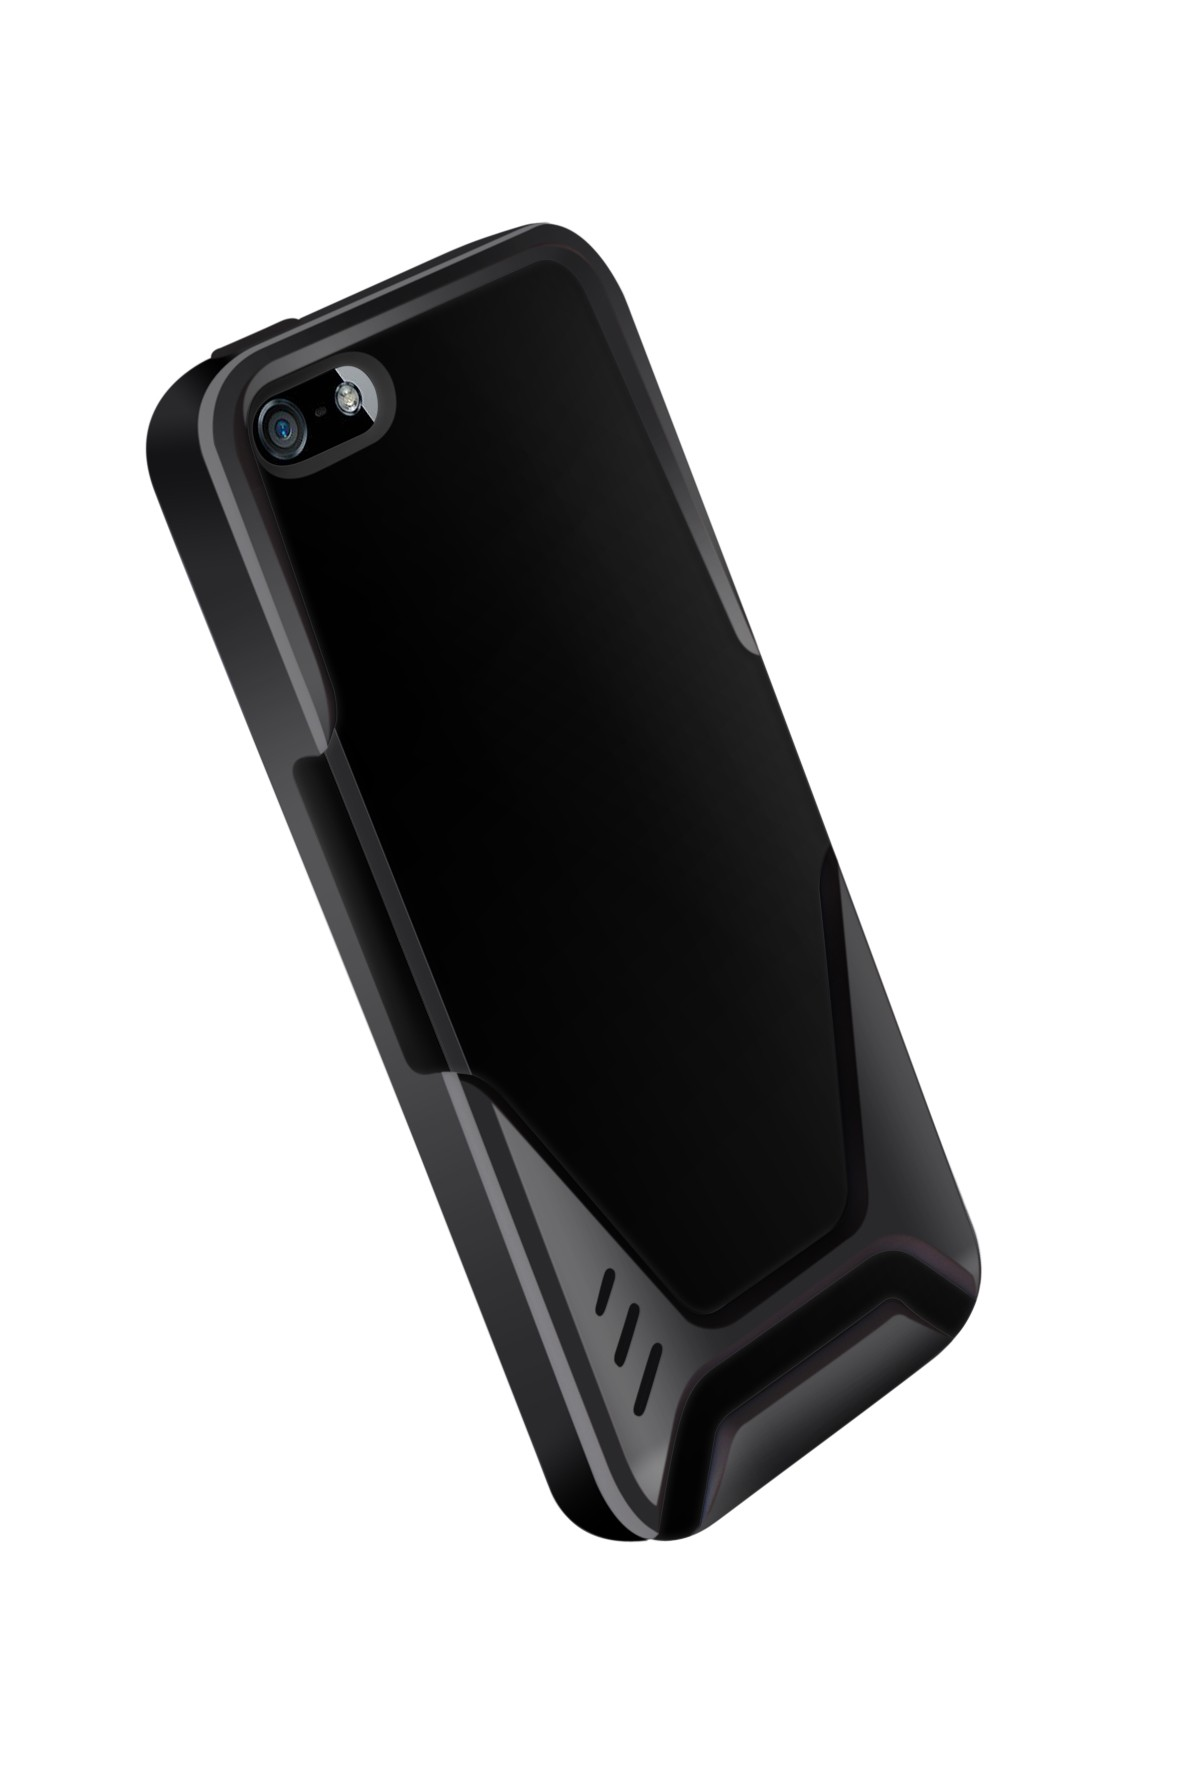 Ozone Visor Pro IPhone 5 Cover Black Grey HT IP5 02 BG